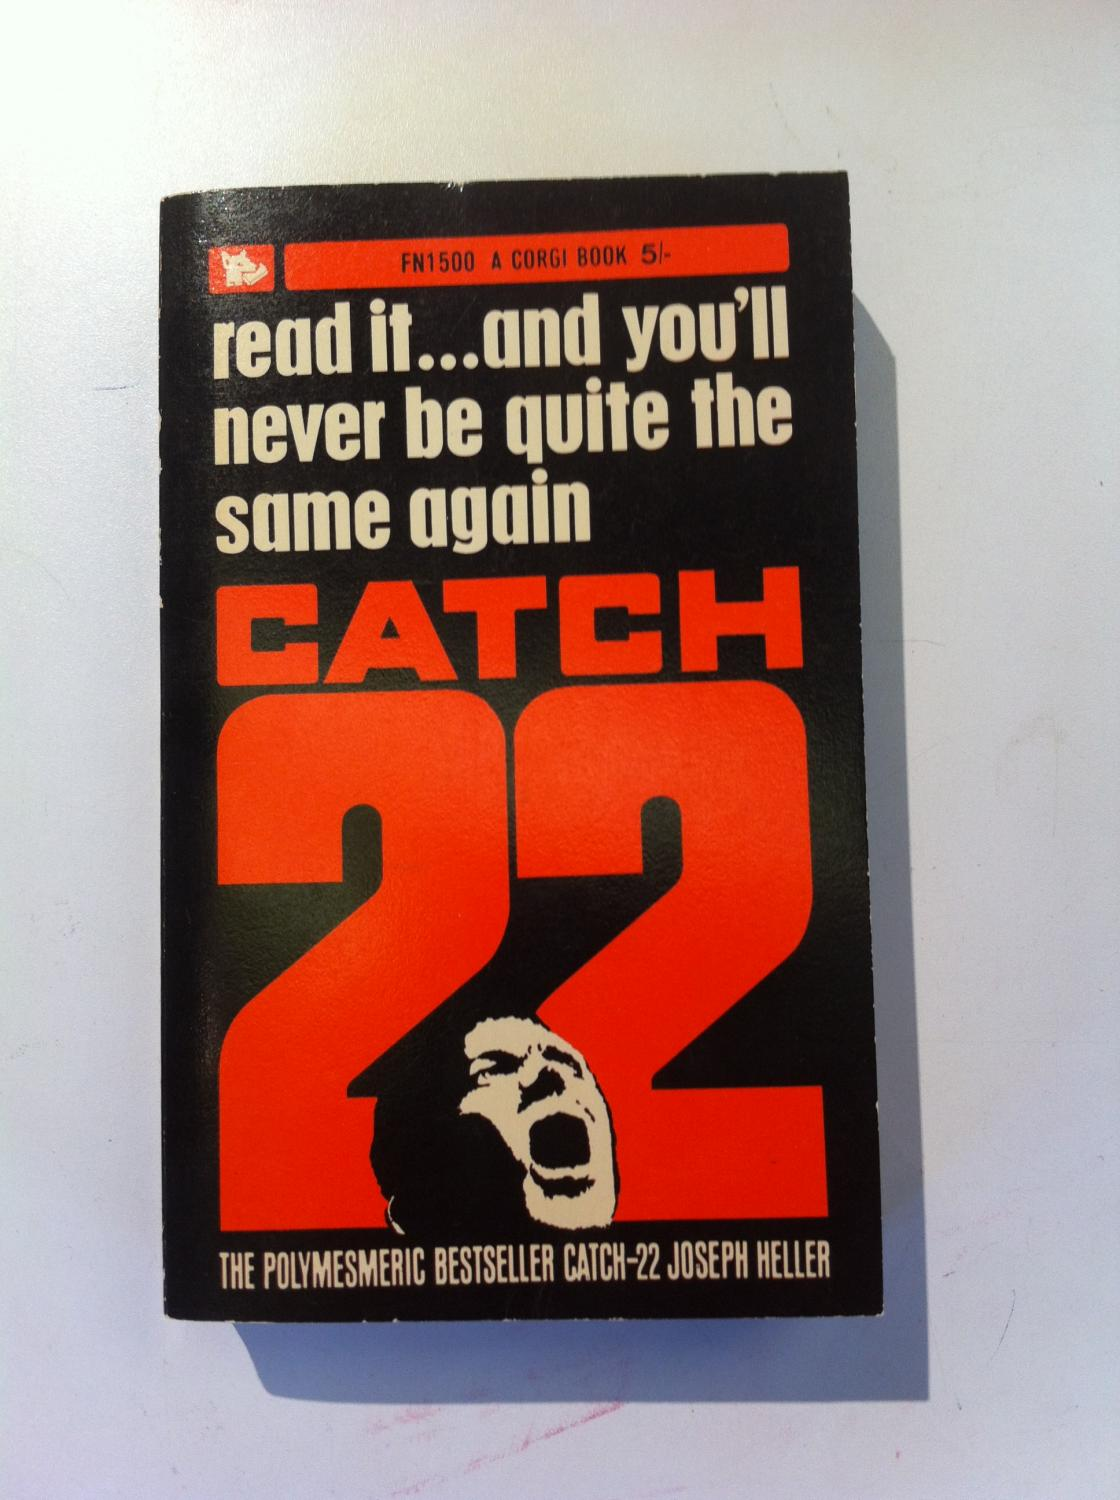 the fear of communism in the book catch 22 by joseph heller Catch 22 book download free download catch 22 book download free or read online books in pdf, epub, tuebl, and mobi format click download or read online button to get catch 22 book download free book now this site is like a library, use search box in the widget to get ebook that you want.